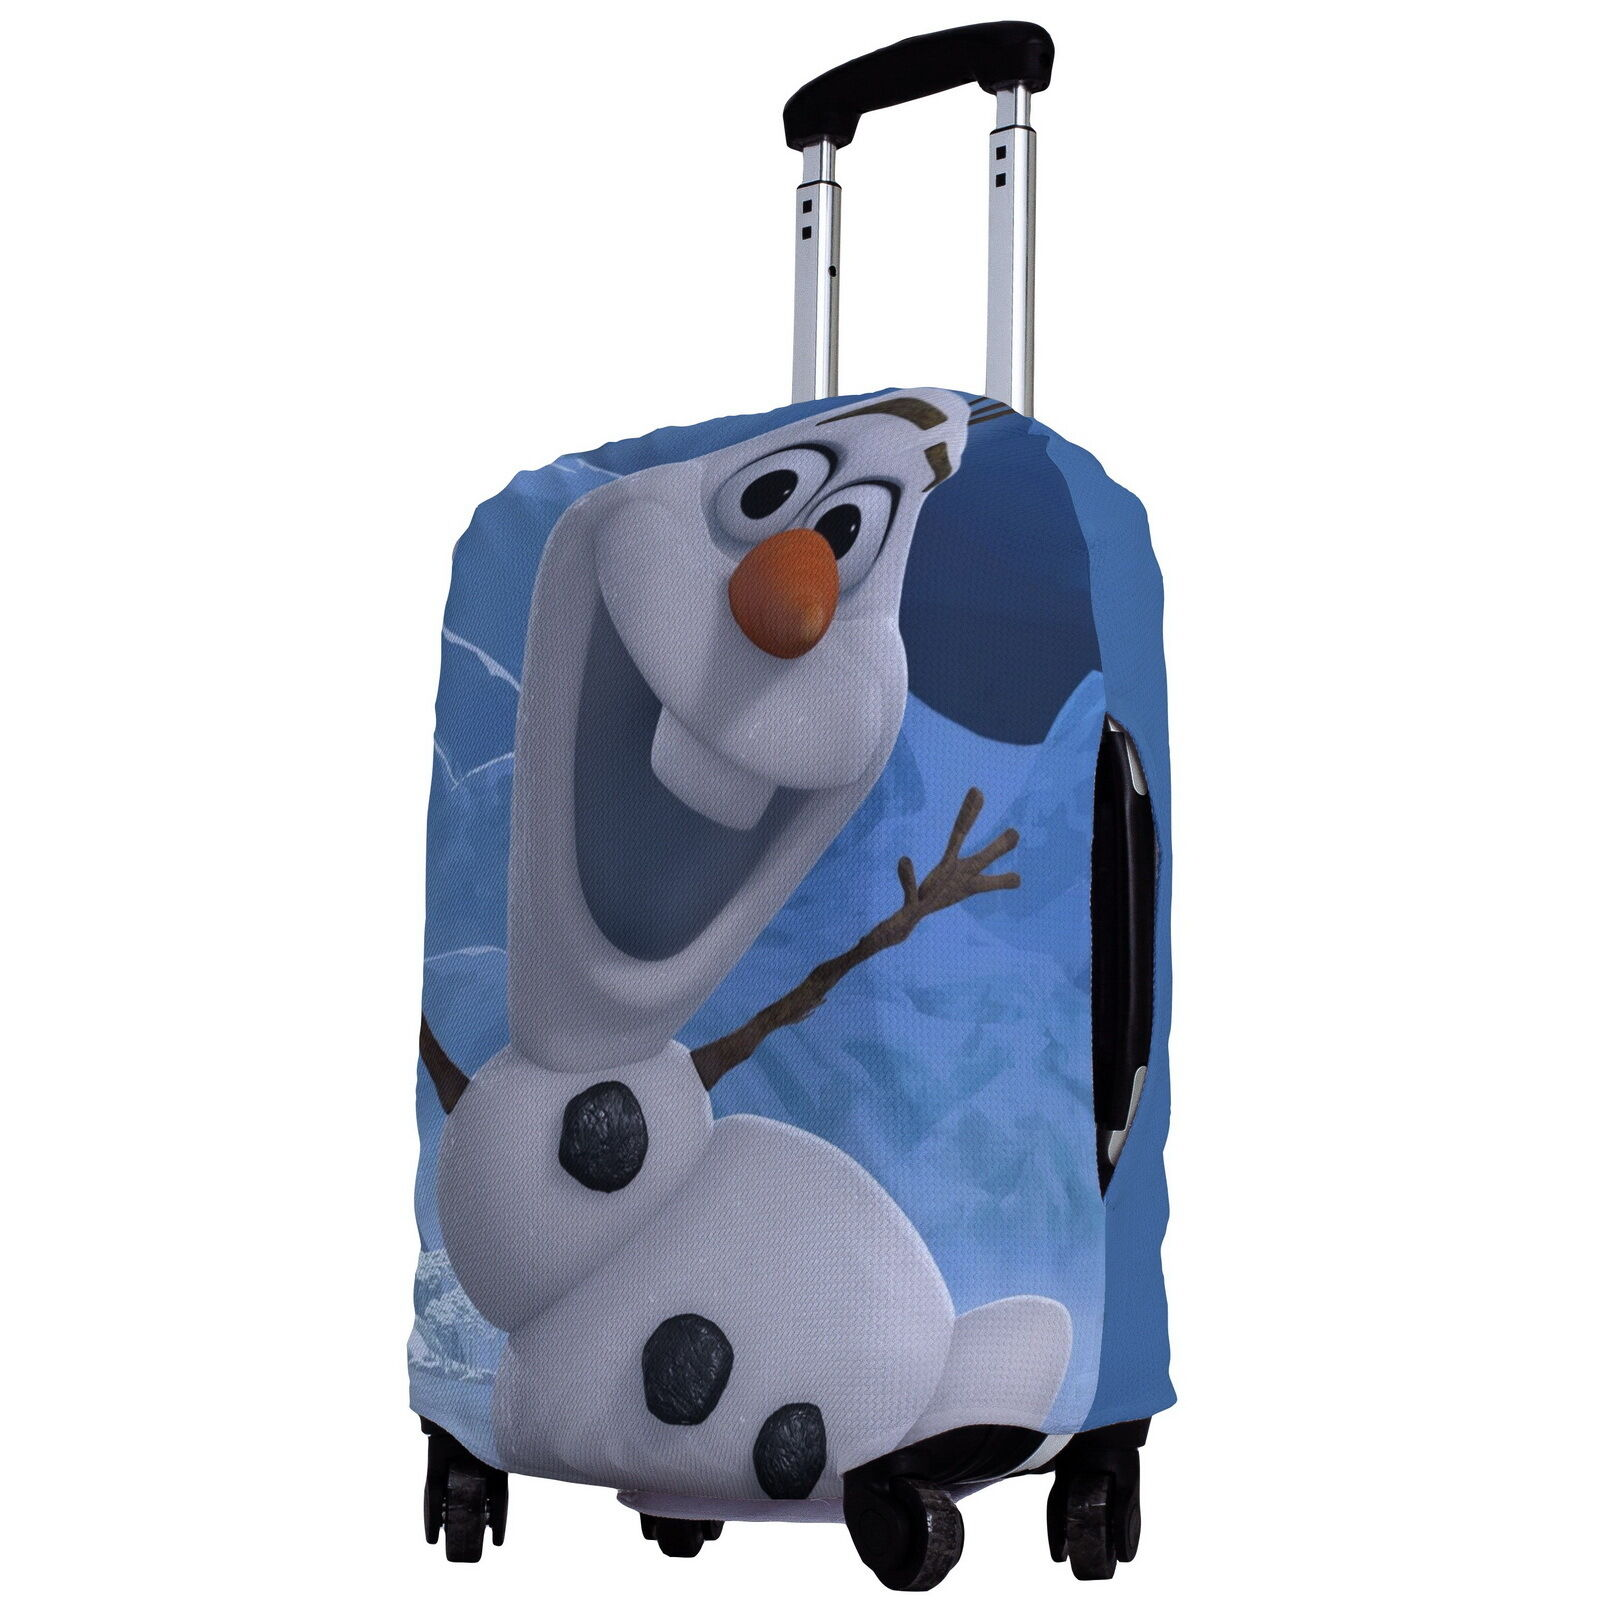 Waving Olaf Suitcase Cover